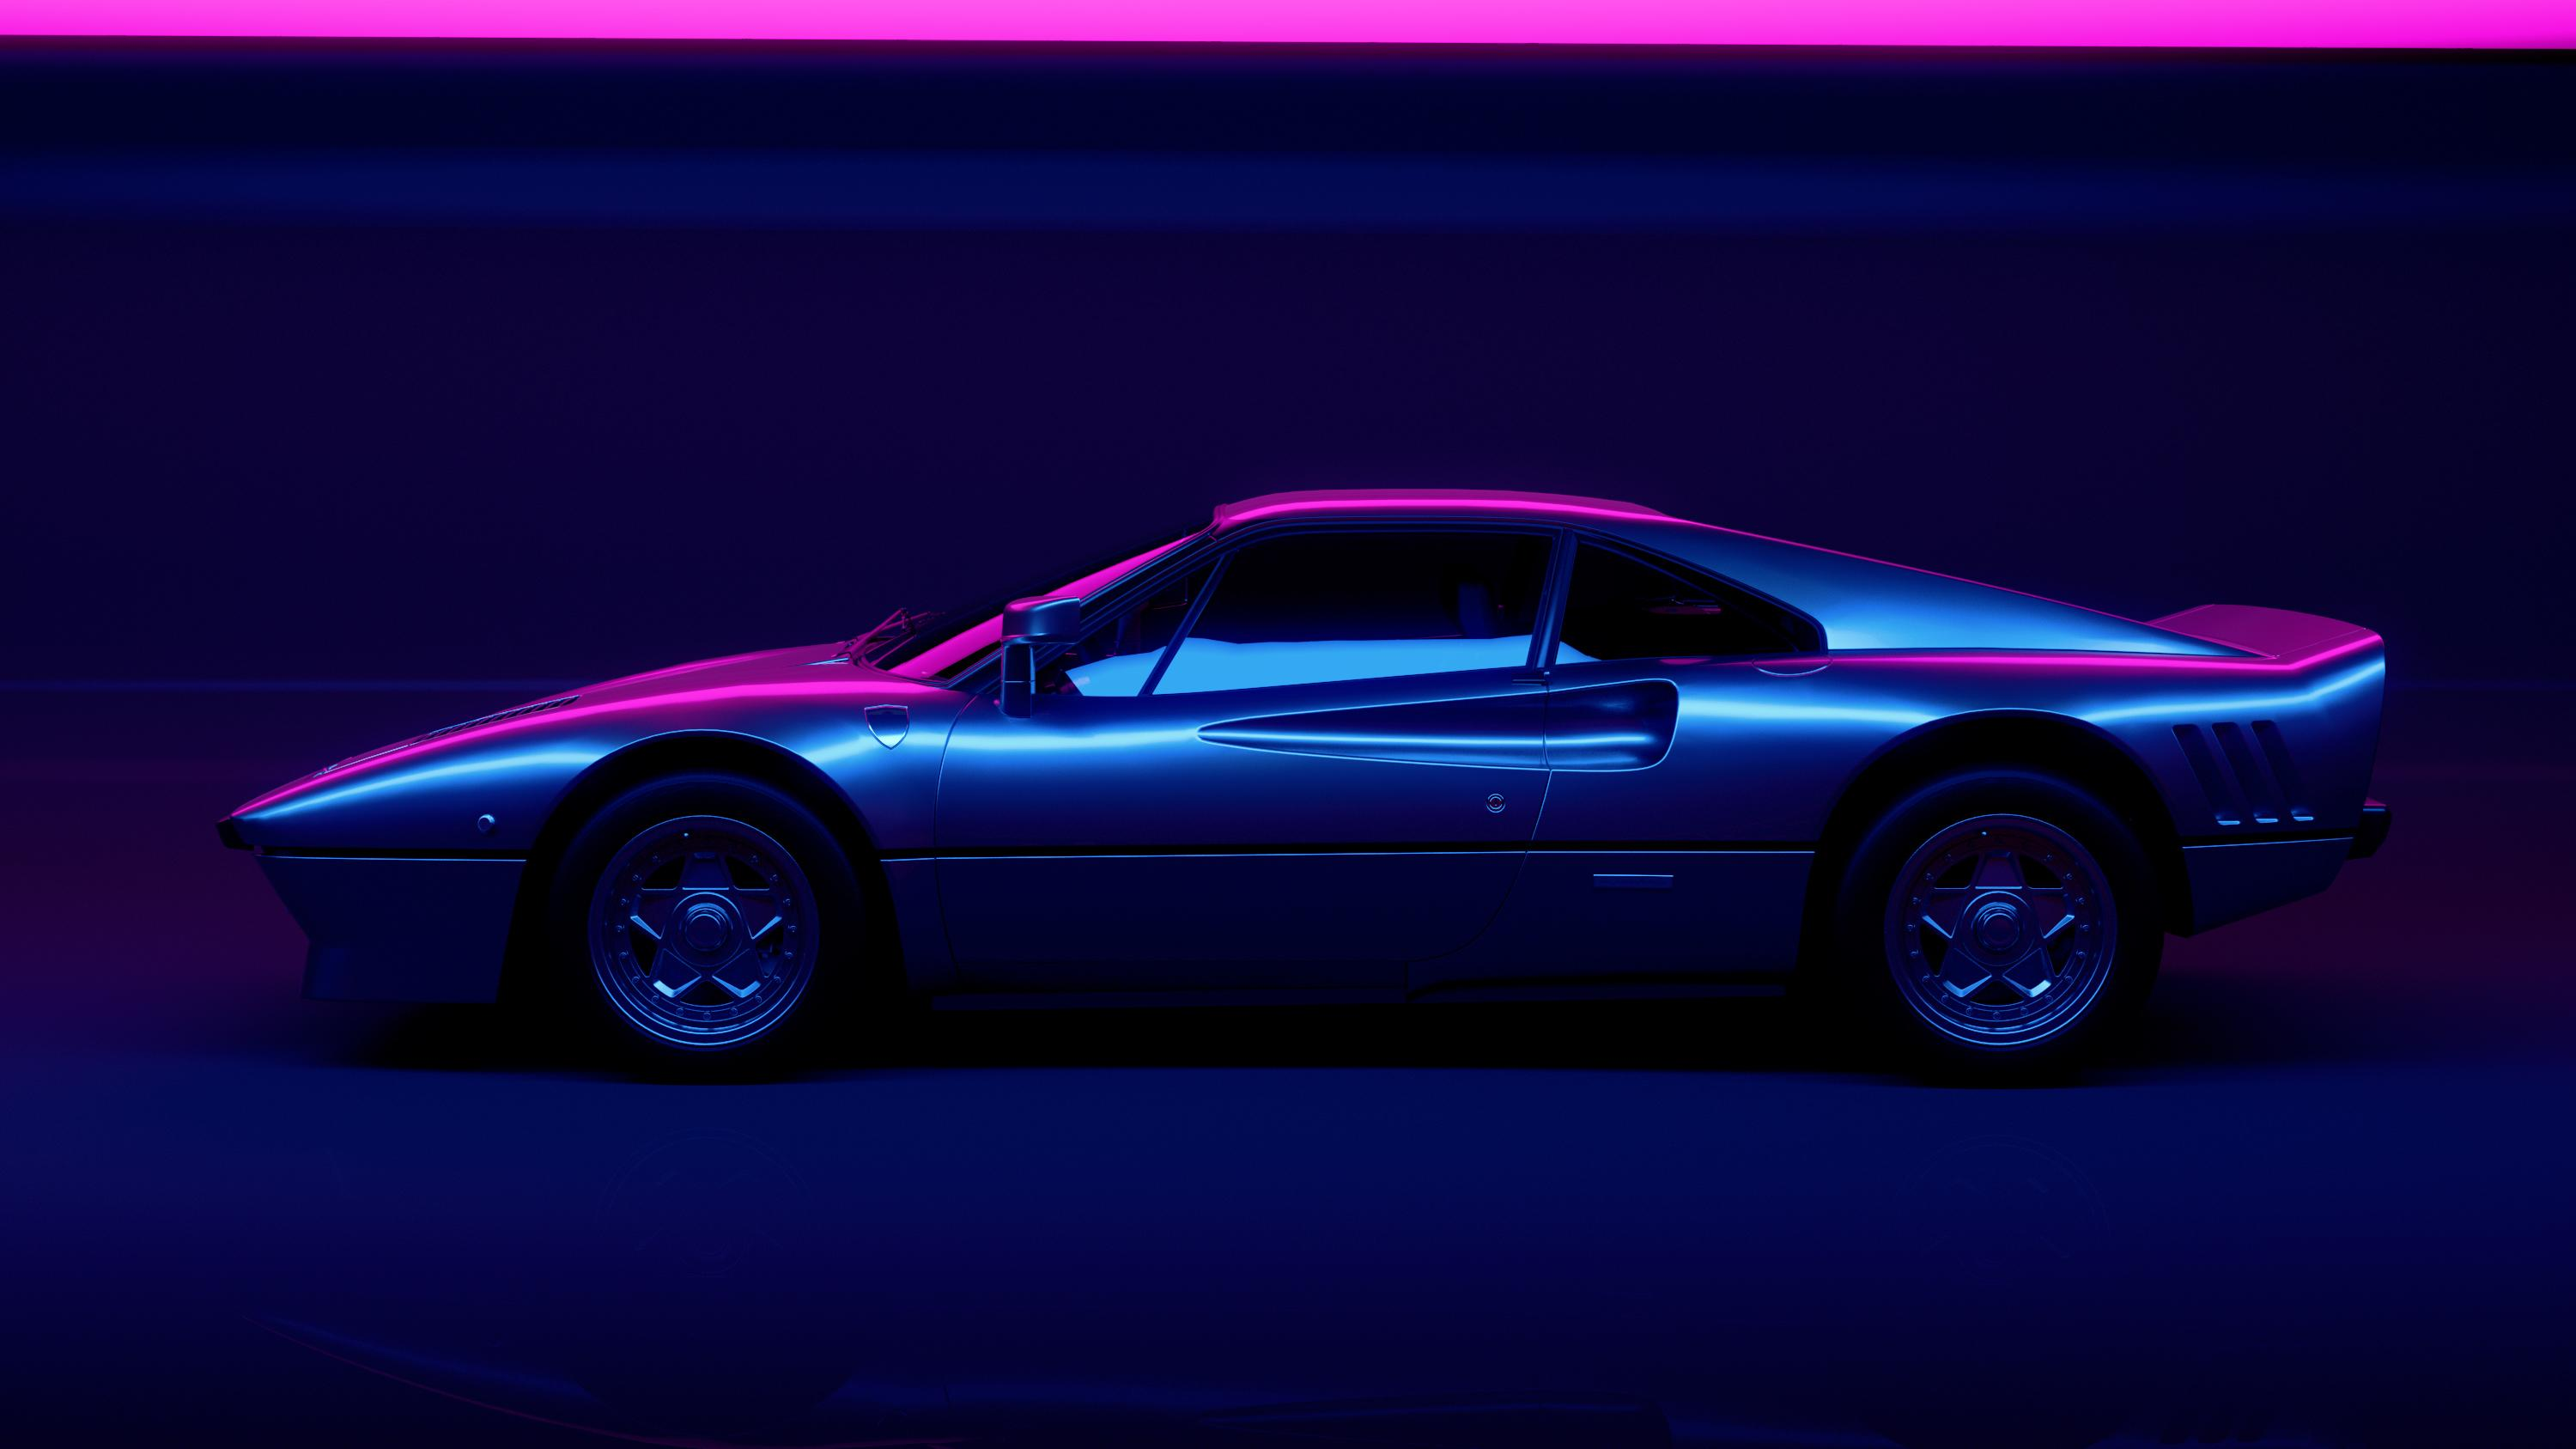 neon wallpapers 4k for your phone and desktop screen